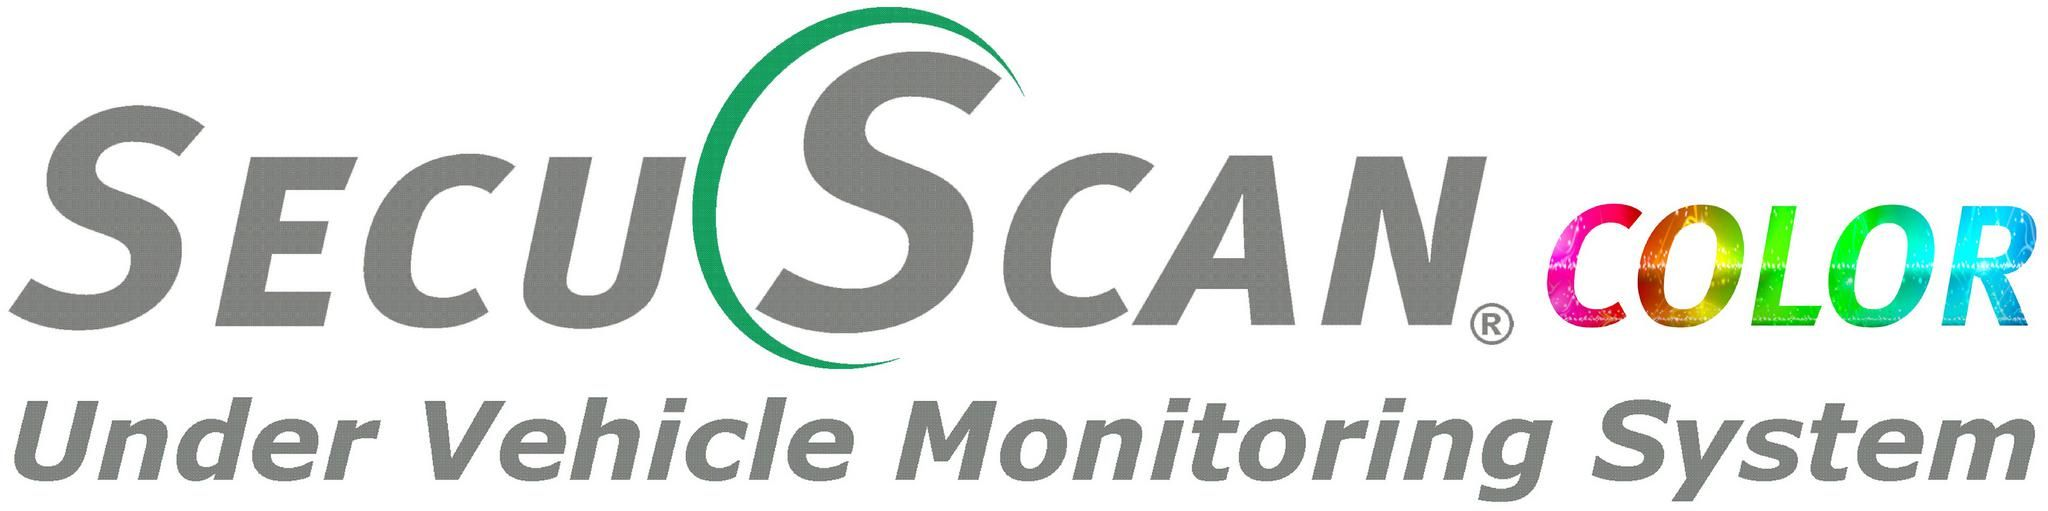 Secuscan